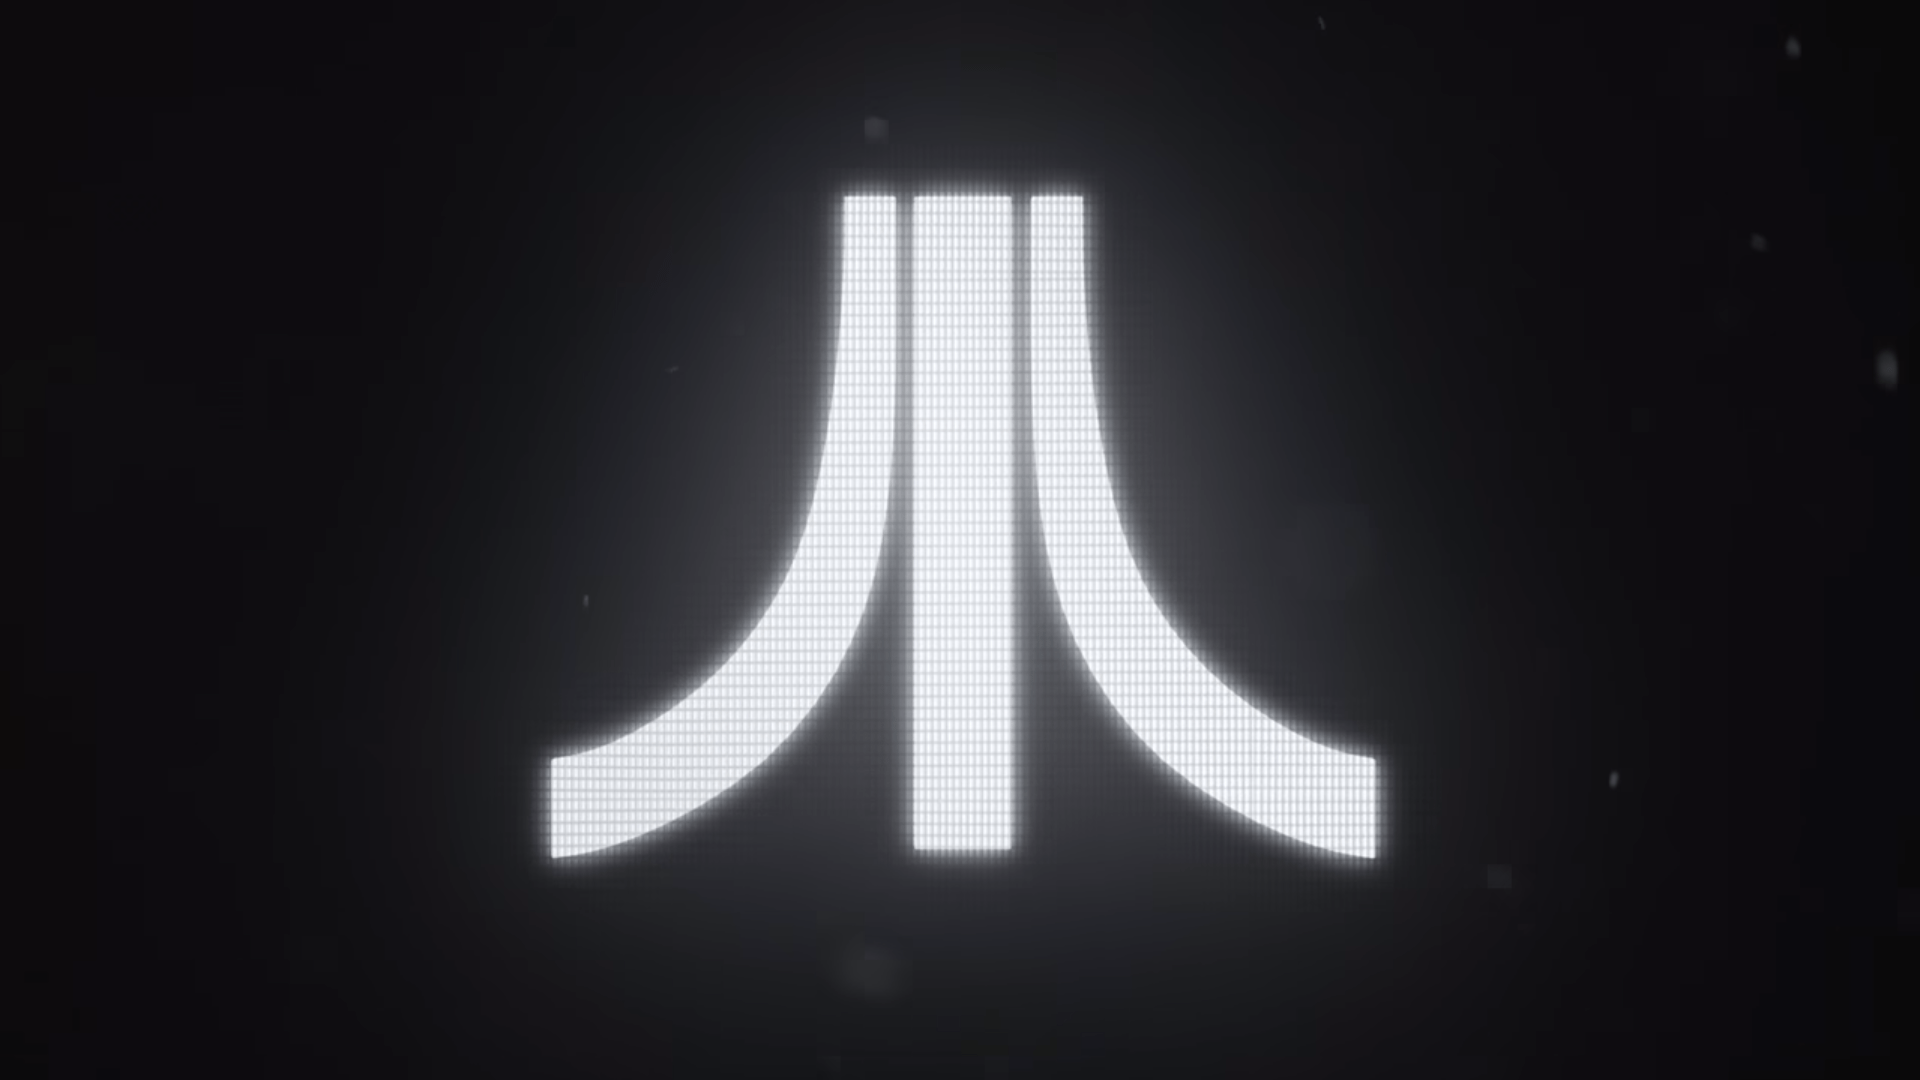 Atari confirms it is making a new video game console